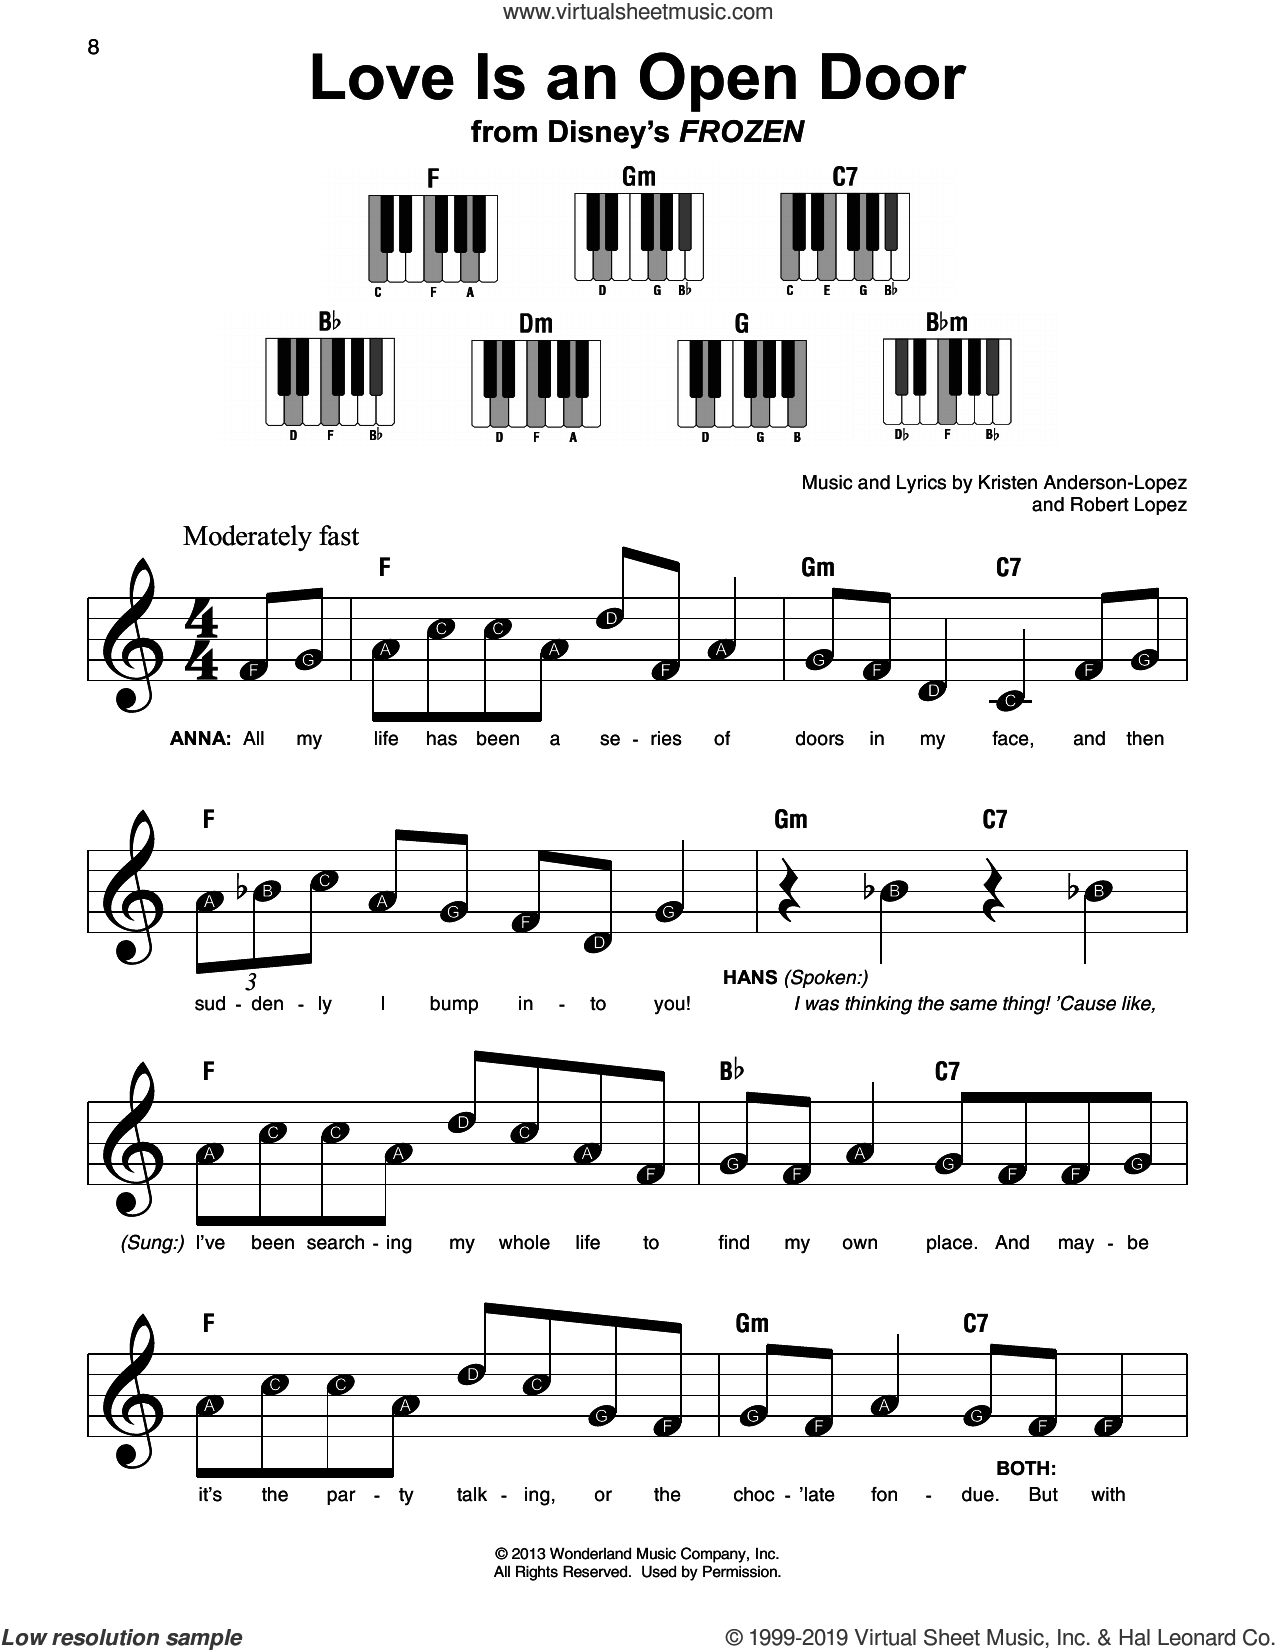 Love Is An Open Door (from Disney's Frozen) sheet music for piano solo by Kristen Bell & Santino Fontana, Kristen Anderson-Lopez and Robert Lopez, beginner skill level